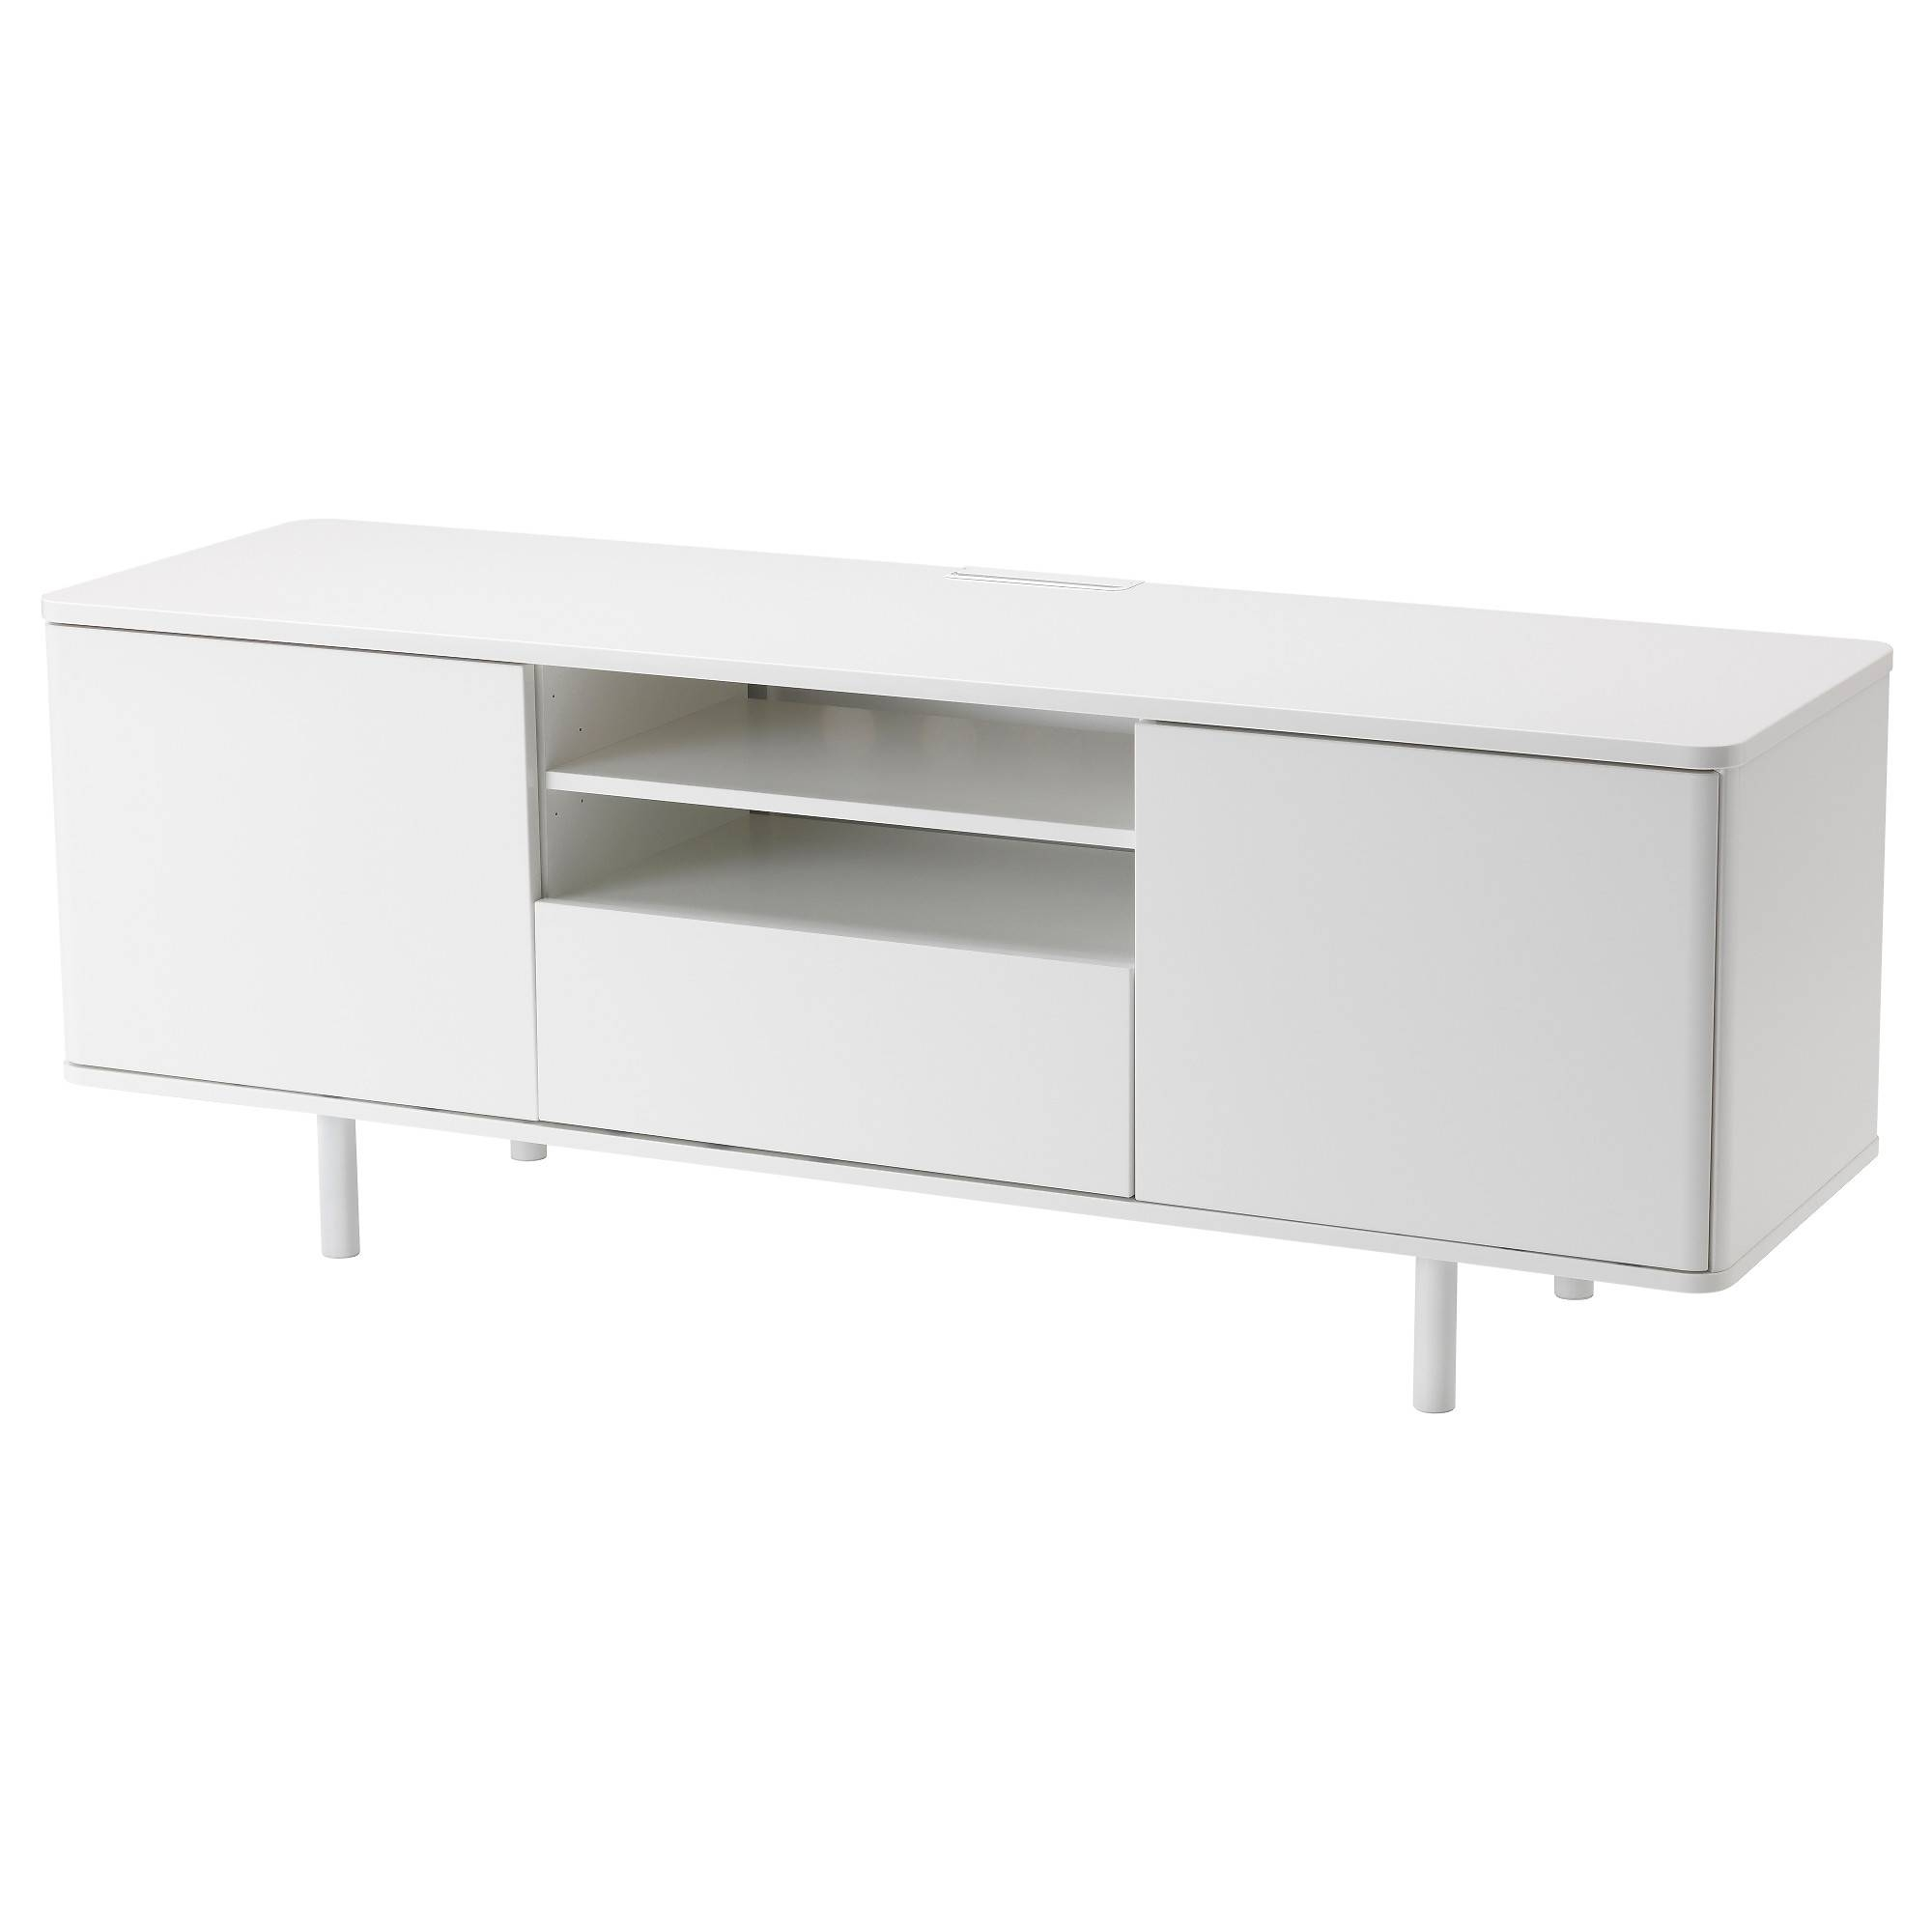 Tv Stands & Tv Units | Ikea Throughout Corner Tv Unit White Gloss (View 10 of 15)